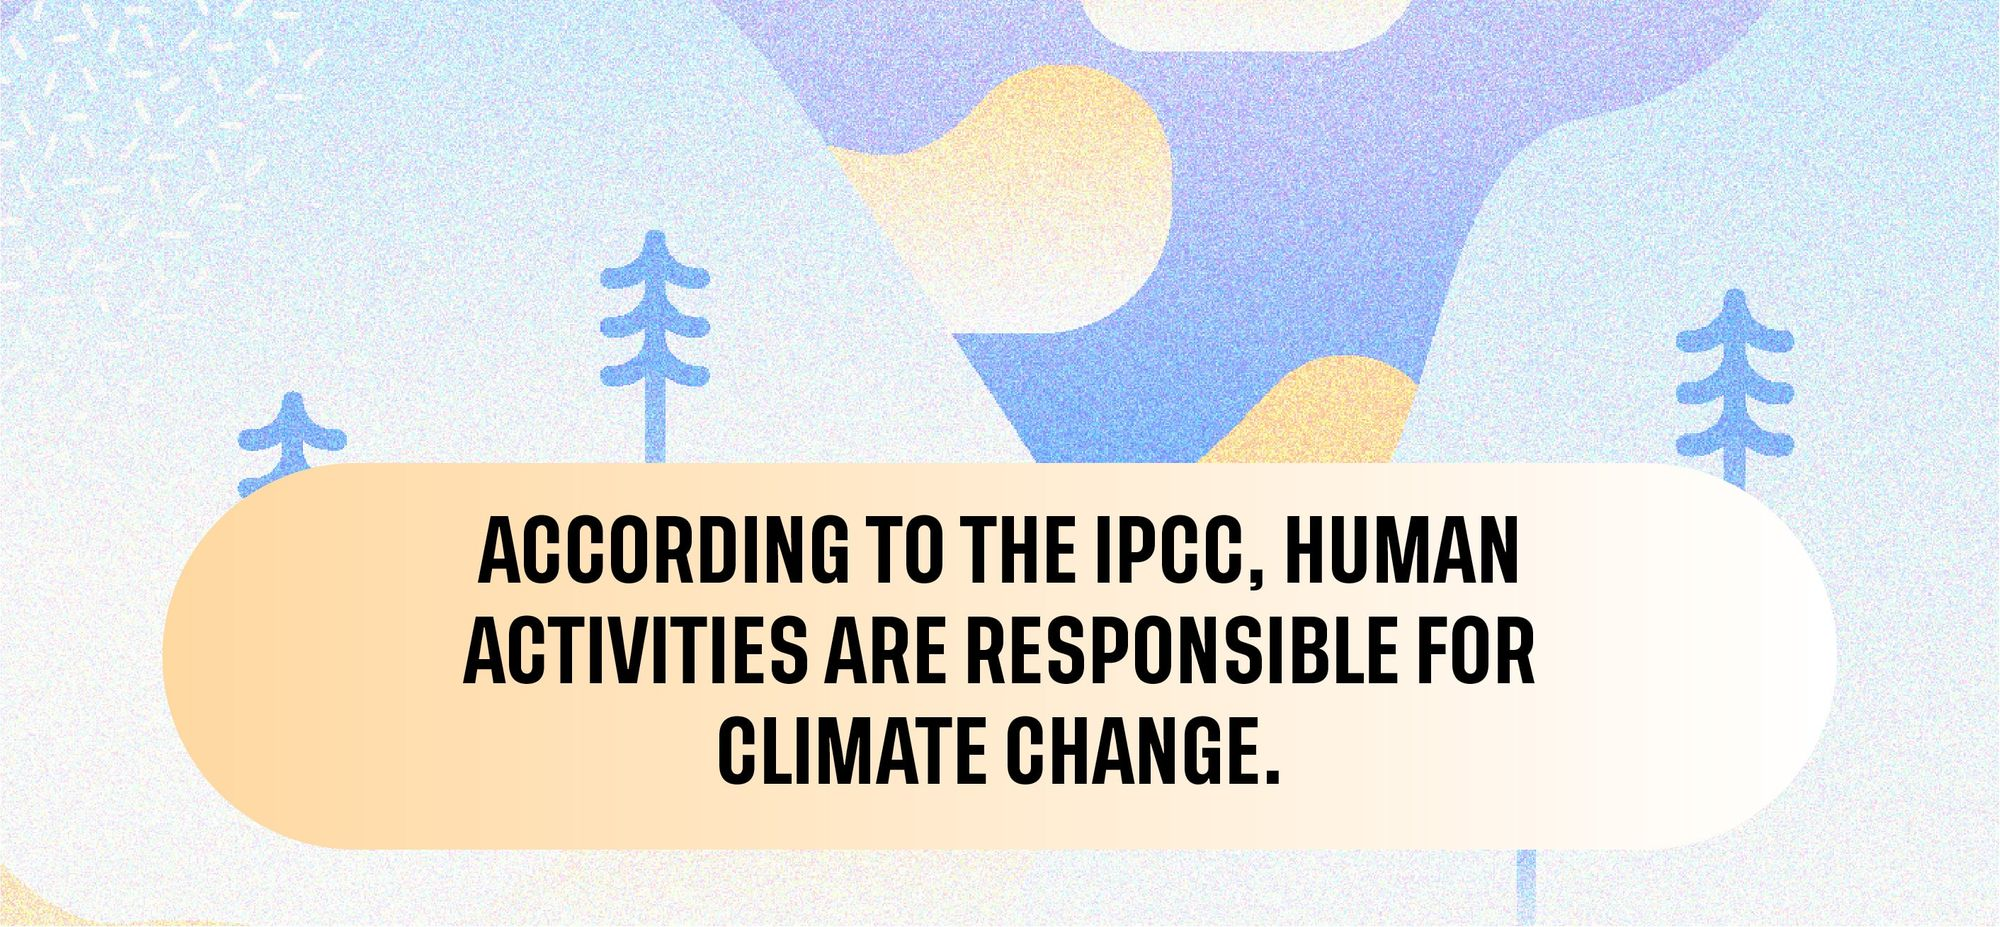 According to the IPCC, human activities are responsible for climate change